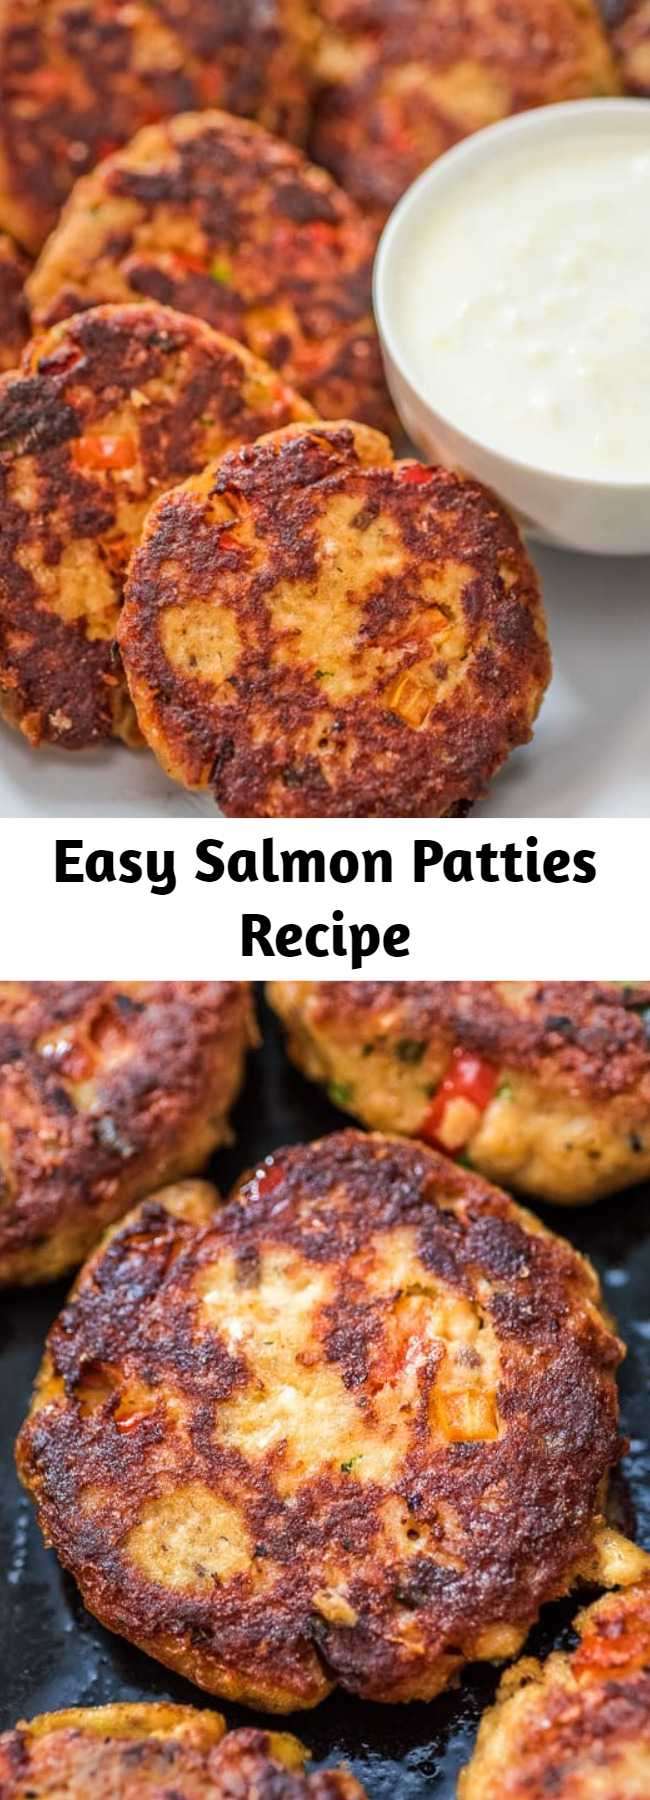 Easy Salmon Patties Recipe - This Easy Salmon Patty recipe is definitely a keeper. Made with canned salmon and simple ingredients, you'll want to make it again and again. #dinner #lunch #salmon #fish #seafood #recipeoftheday